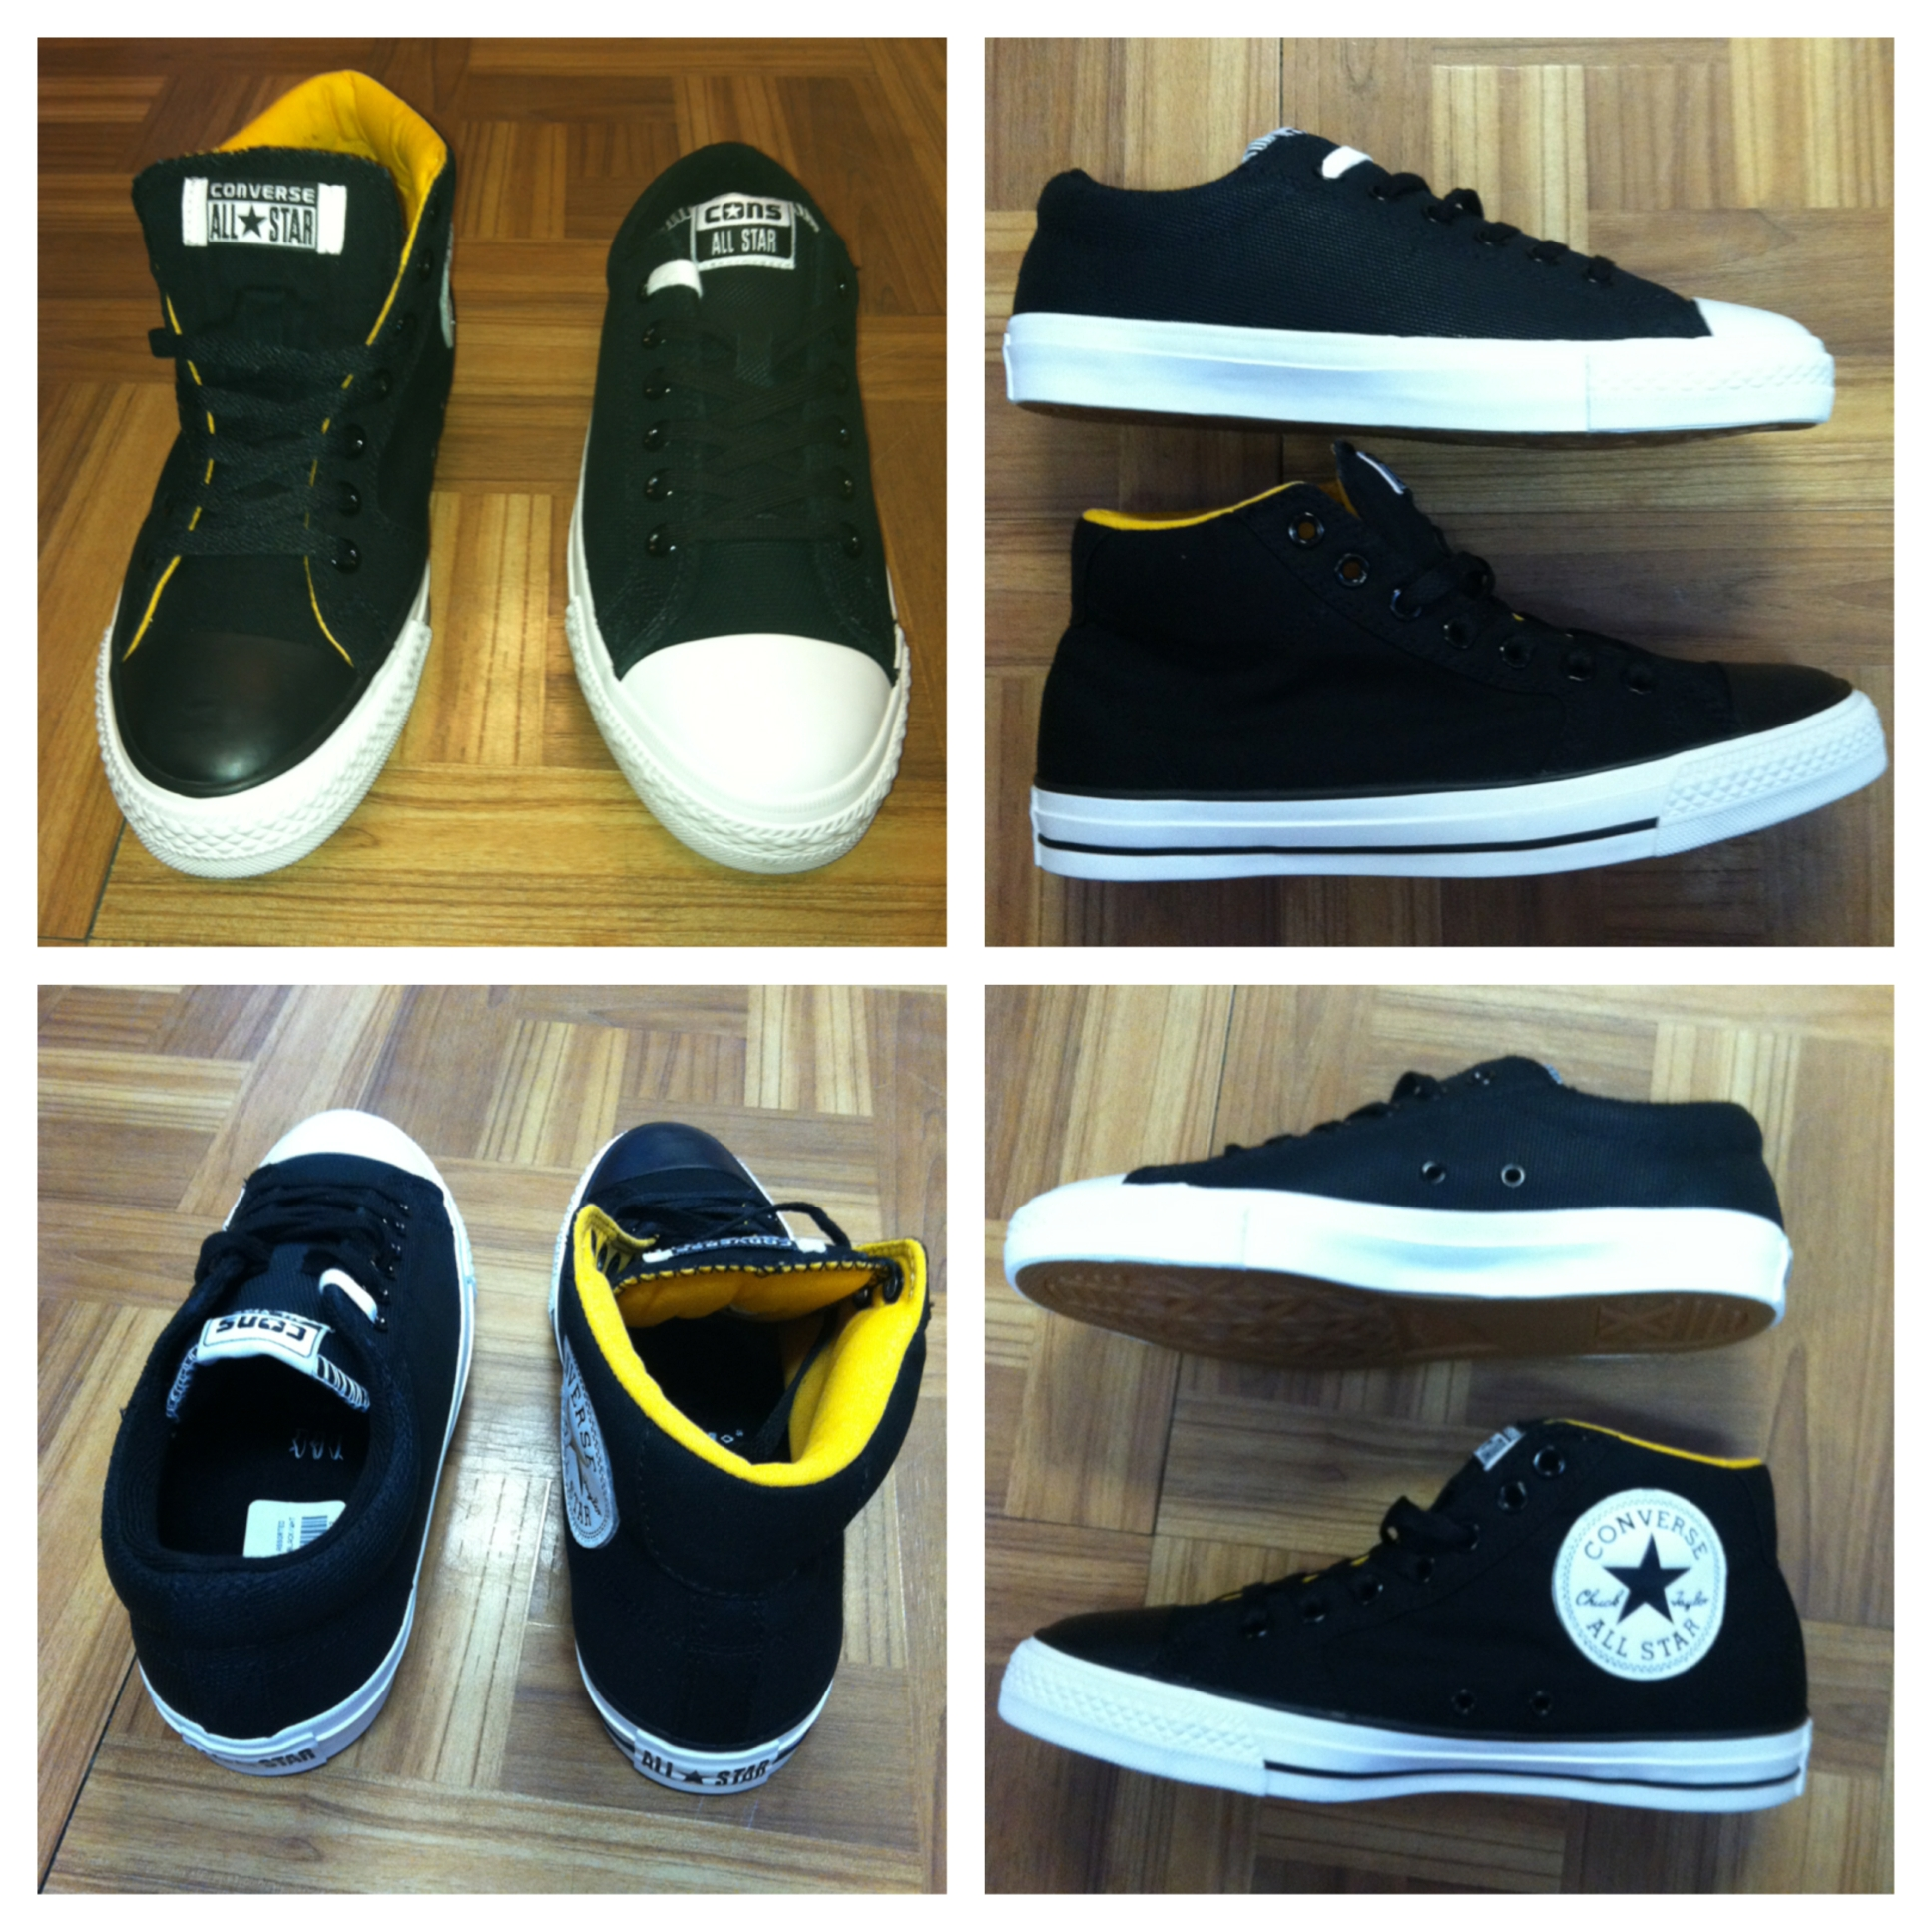 Cons Shoes Skateboarding All New Shoes From Cons